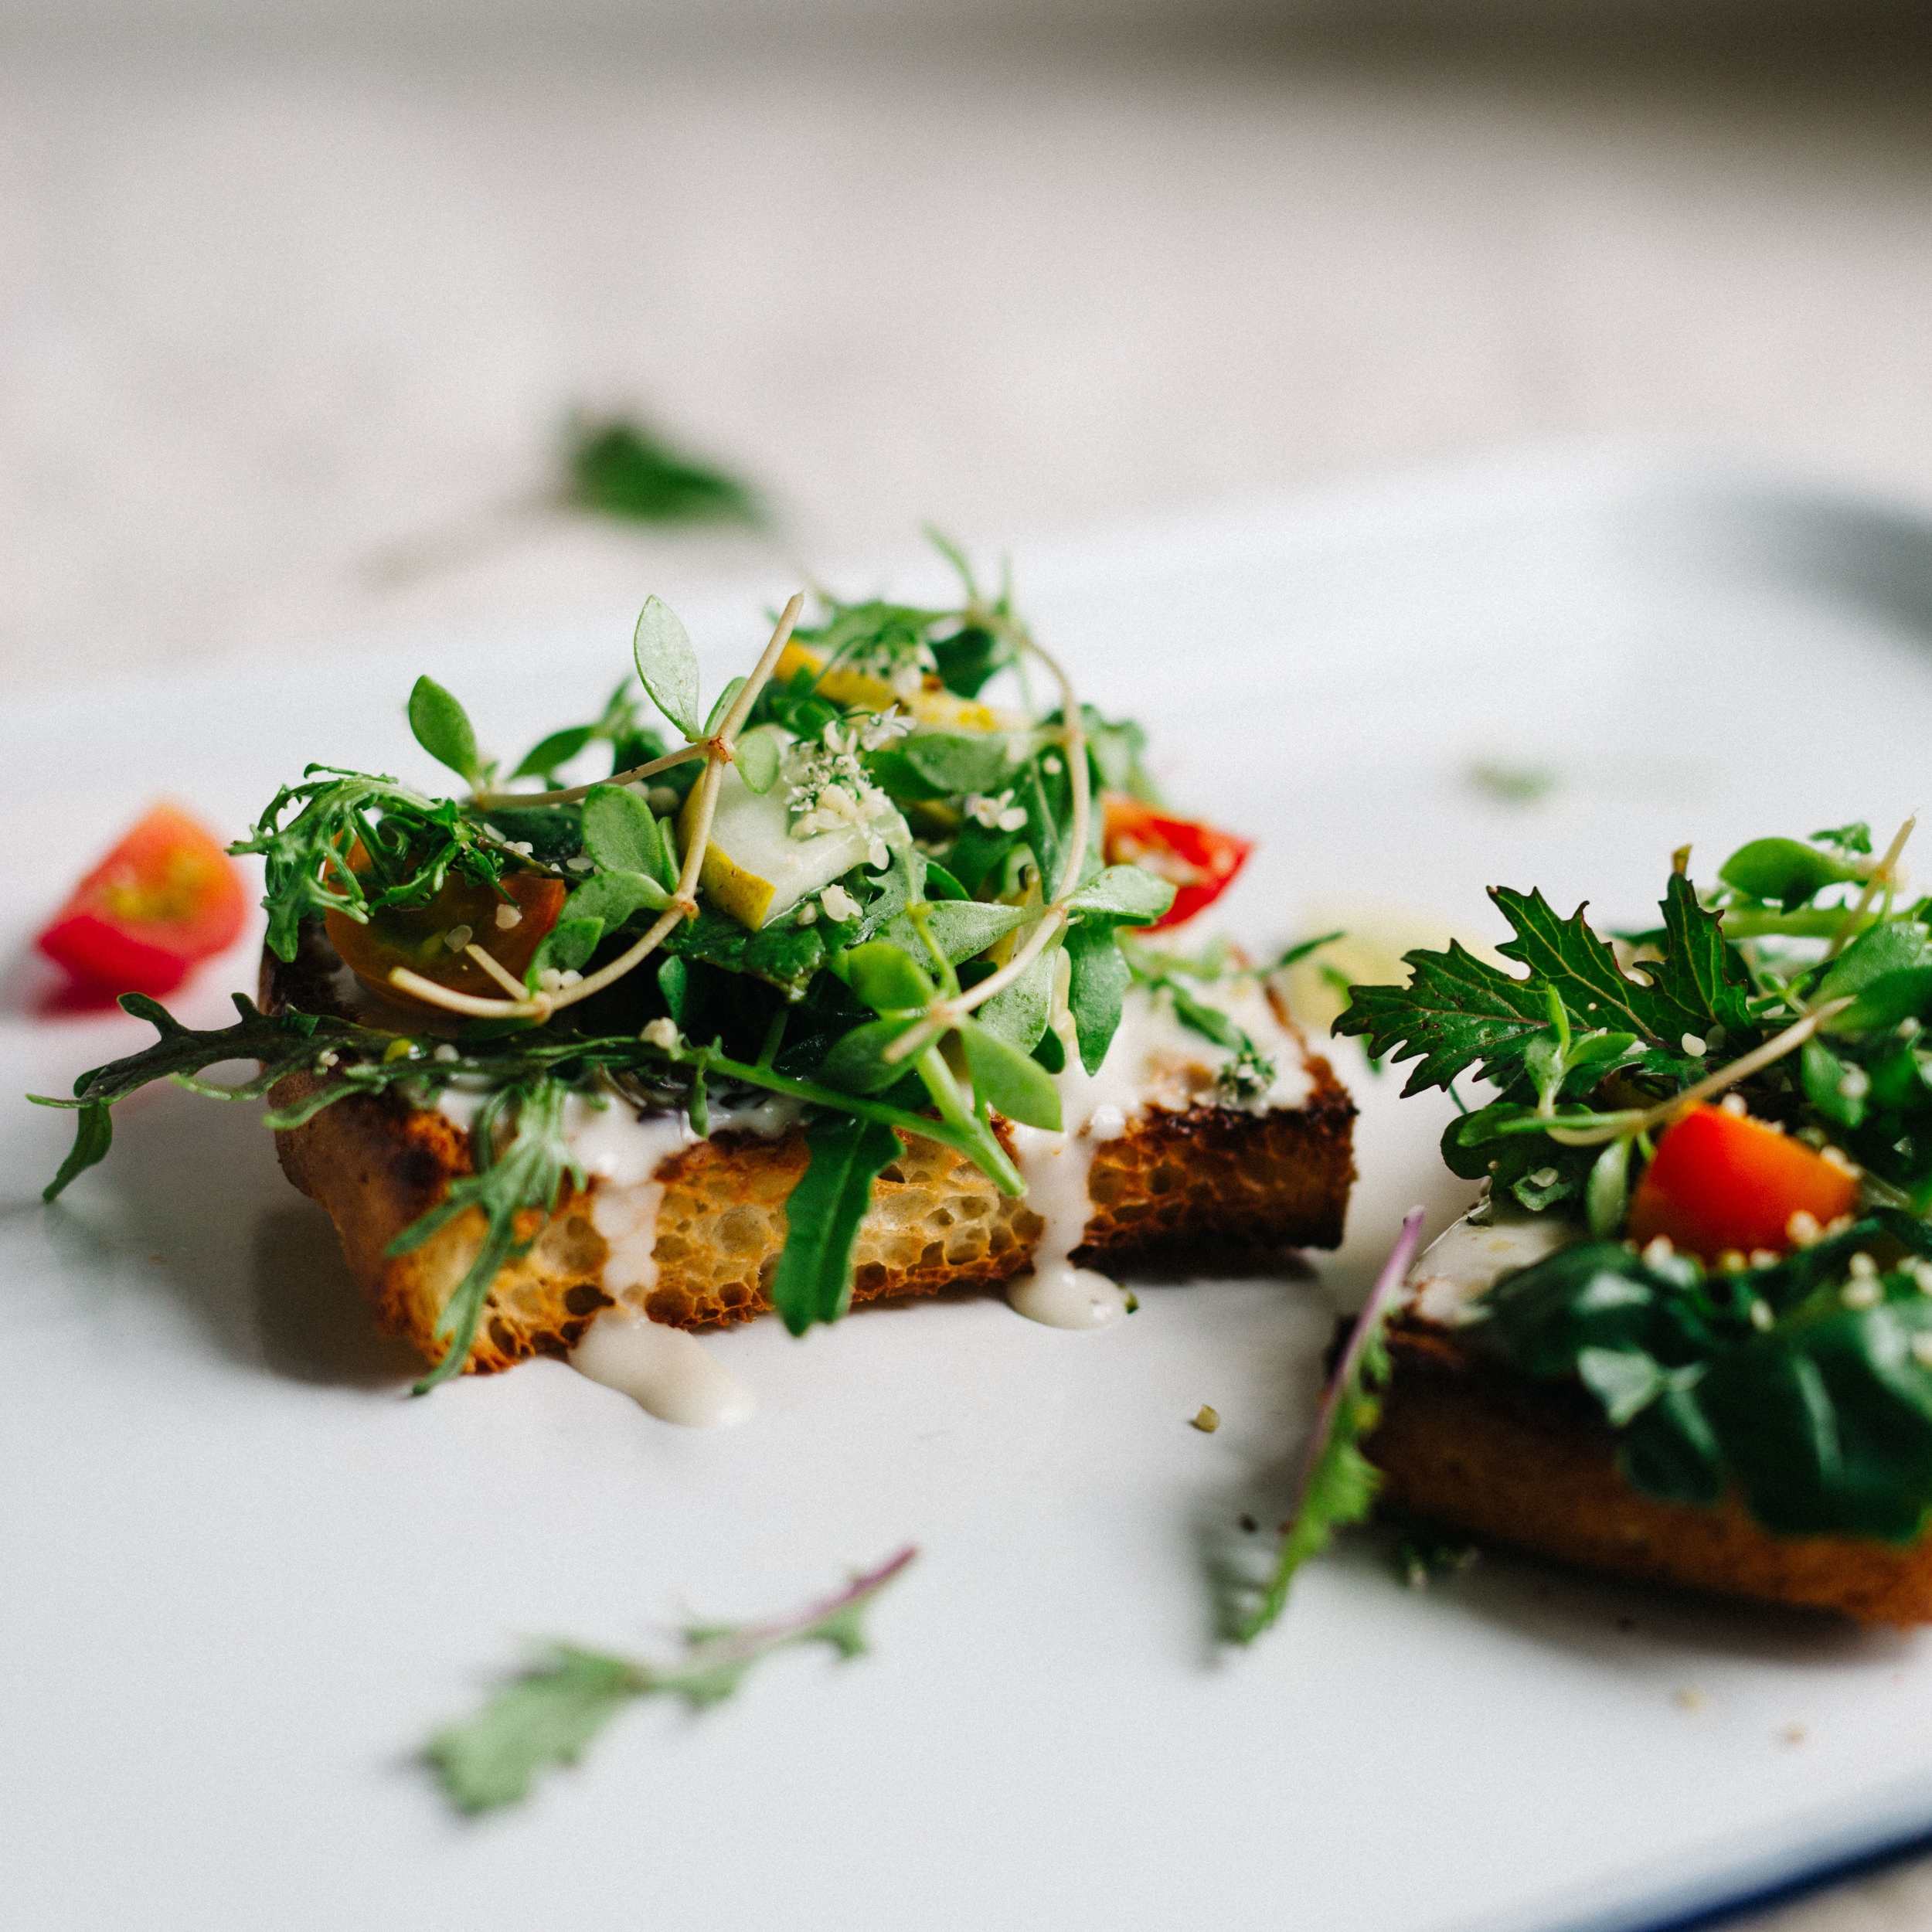 cilantro & hemp salad on tahini-yogurt toast